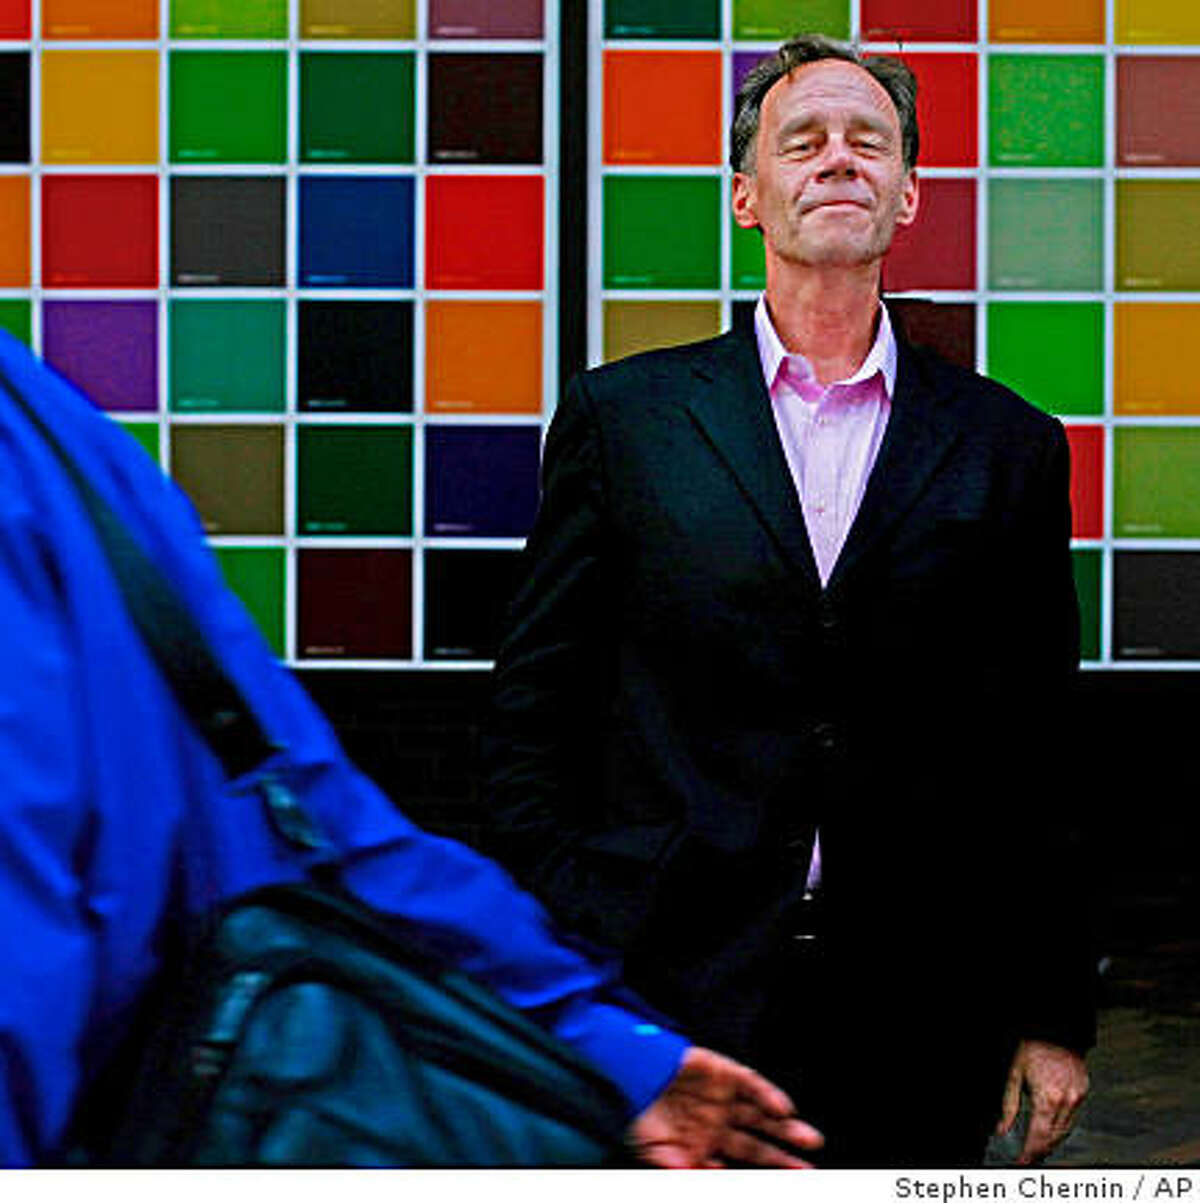 New York Times media columnist David Carr has died at his office at age 58.